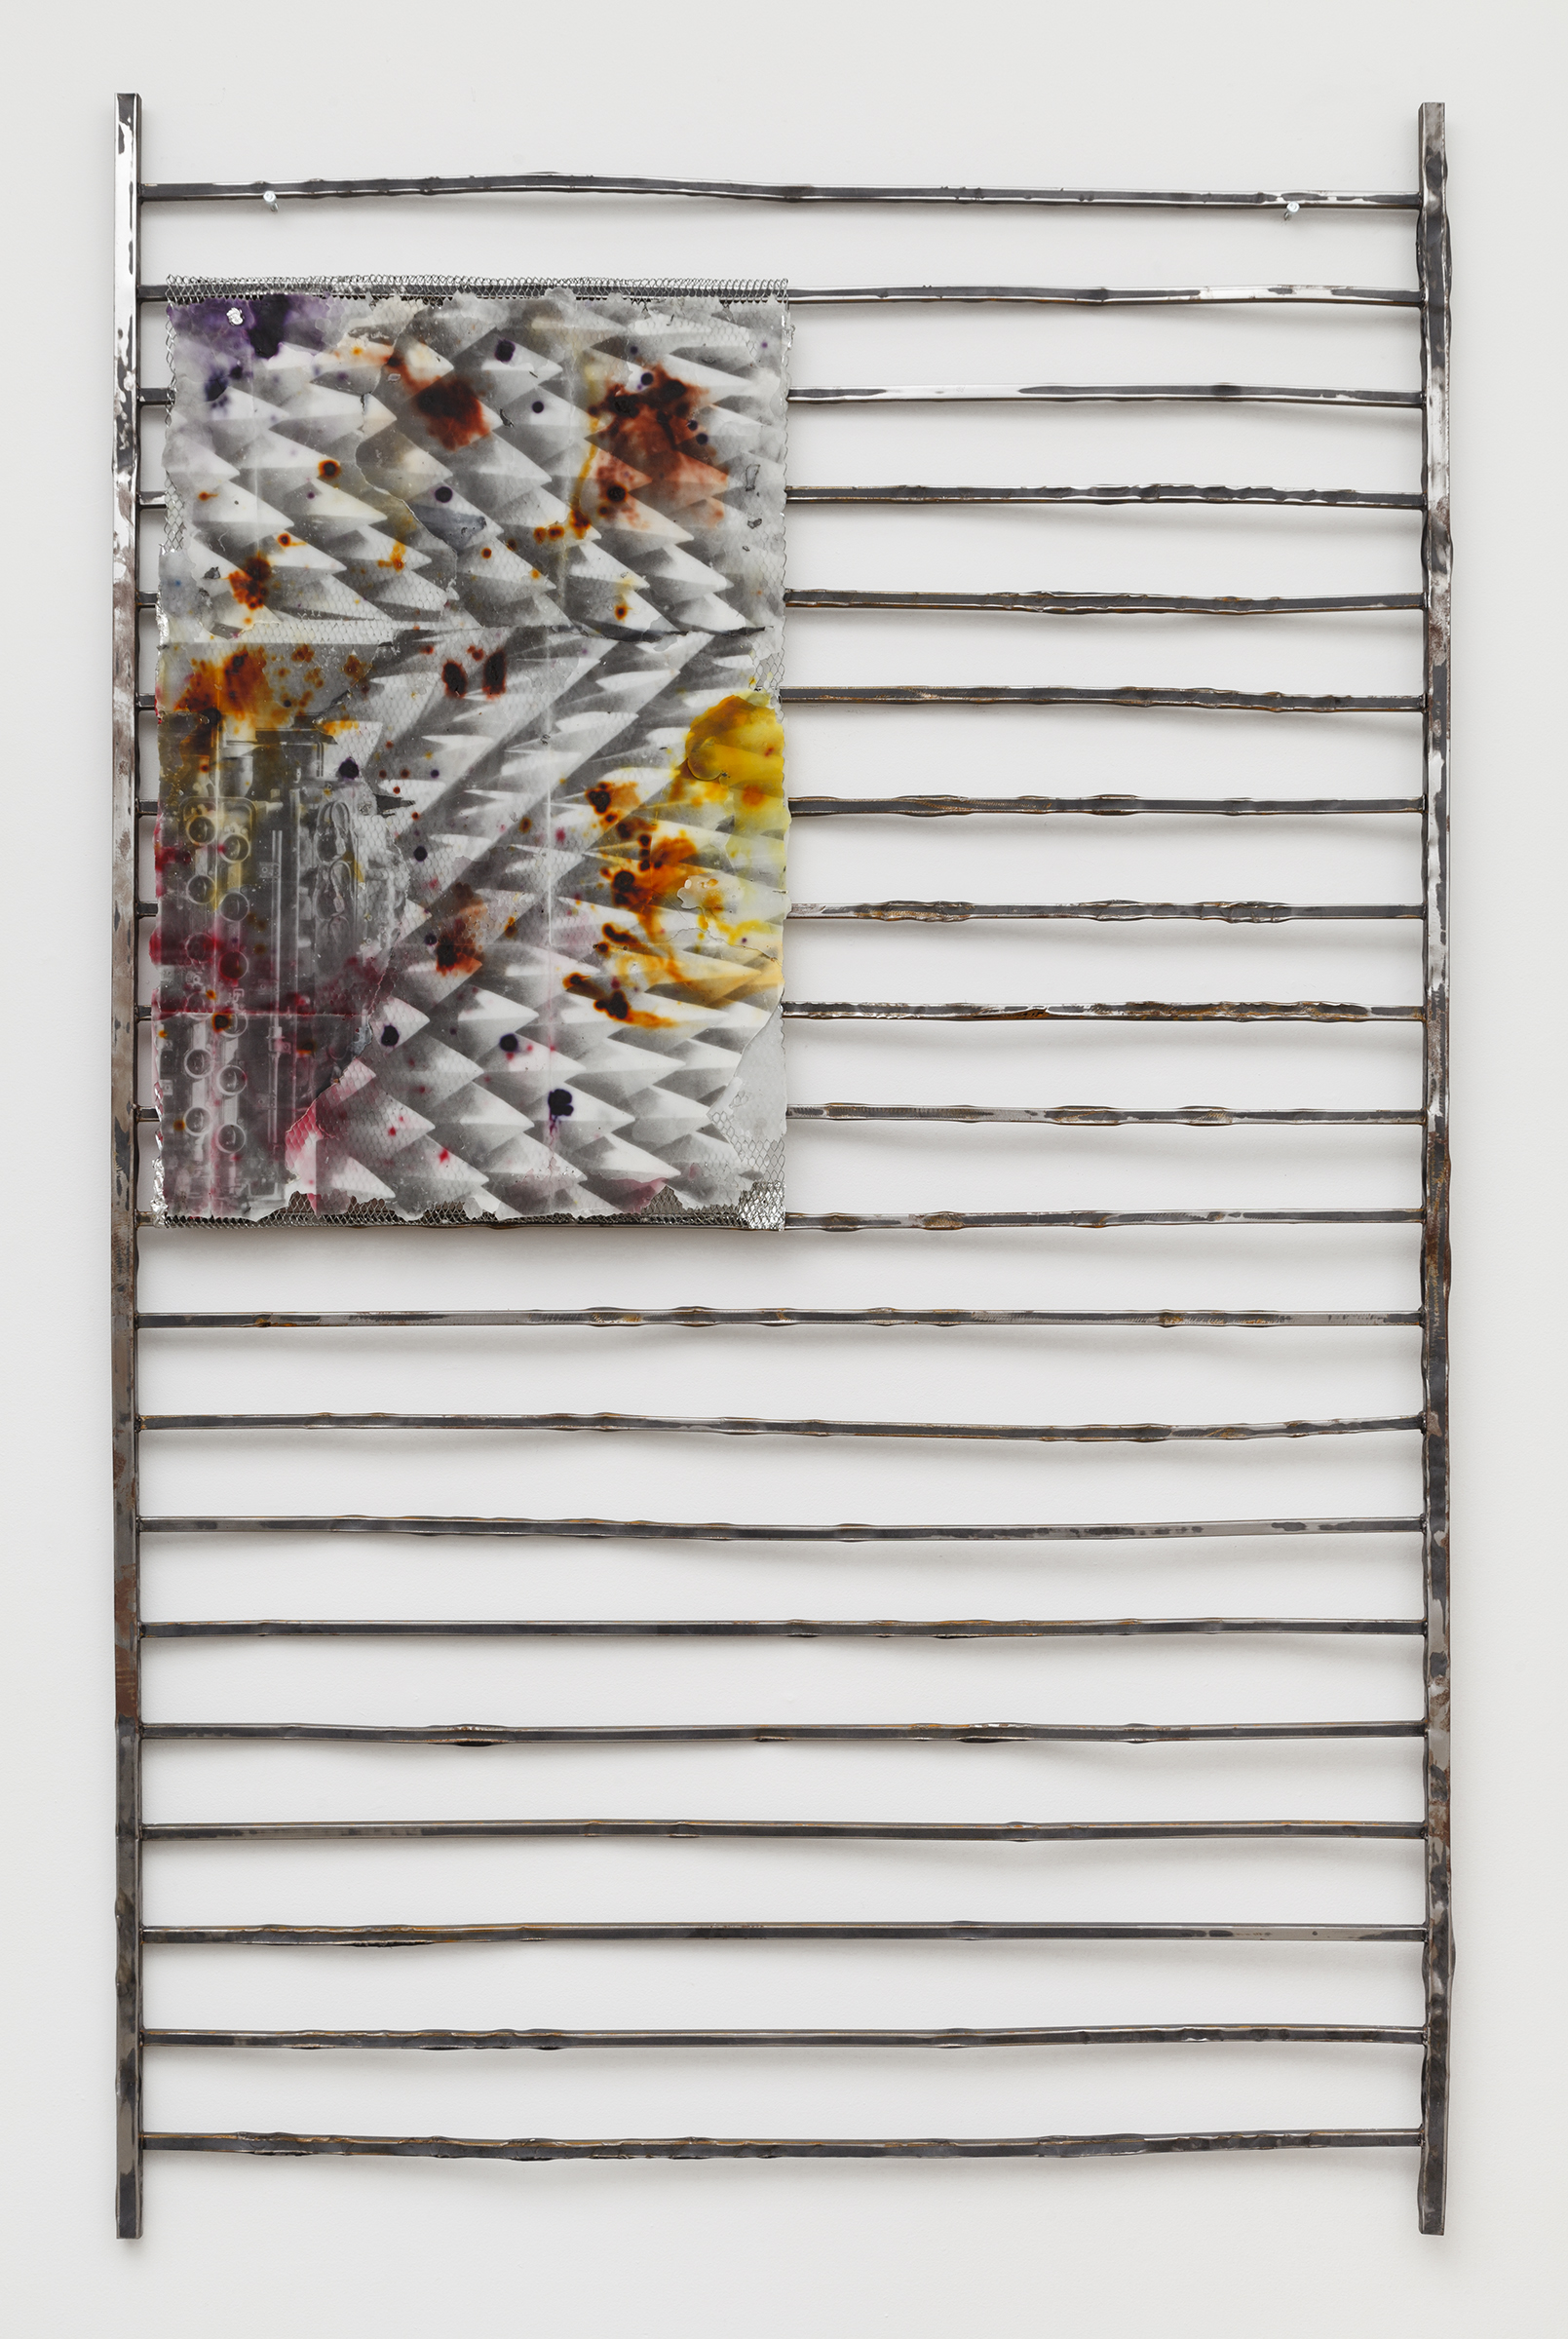 JPW3, HP, 2015, wax, wax dye, offset ink, expanded metal and steel fence, 92.5 x 58 x 1 in.